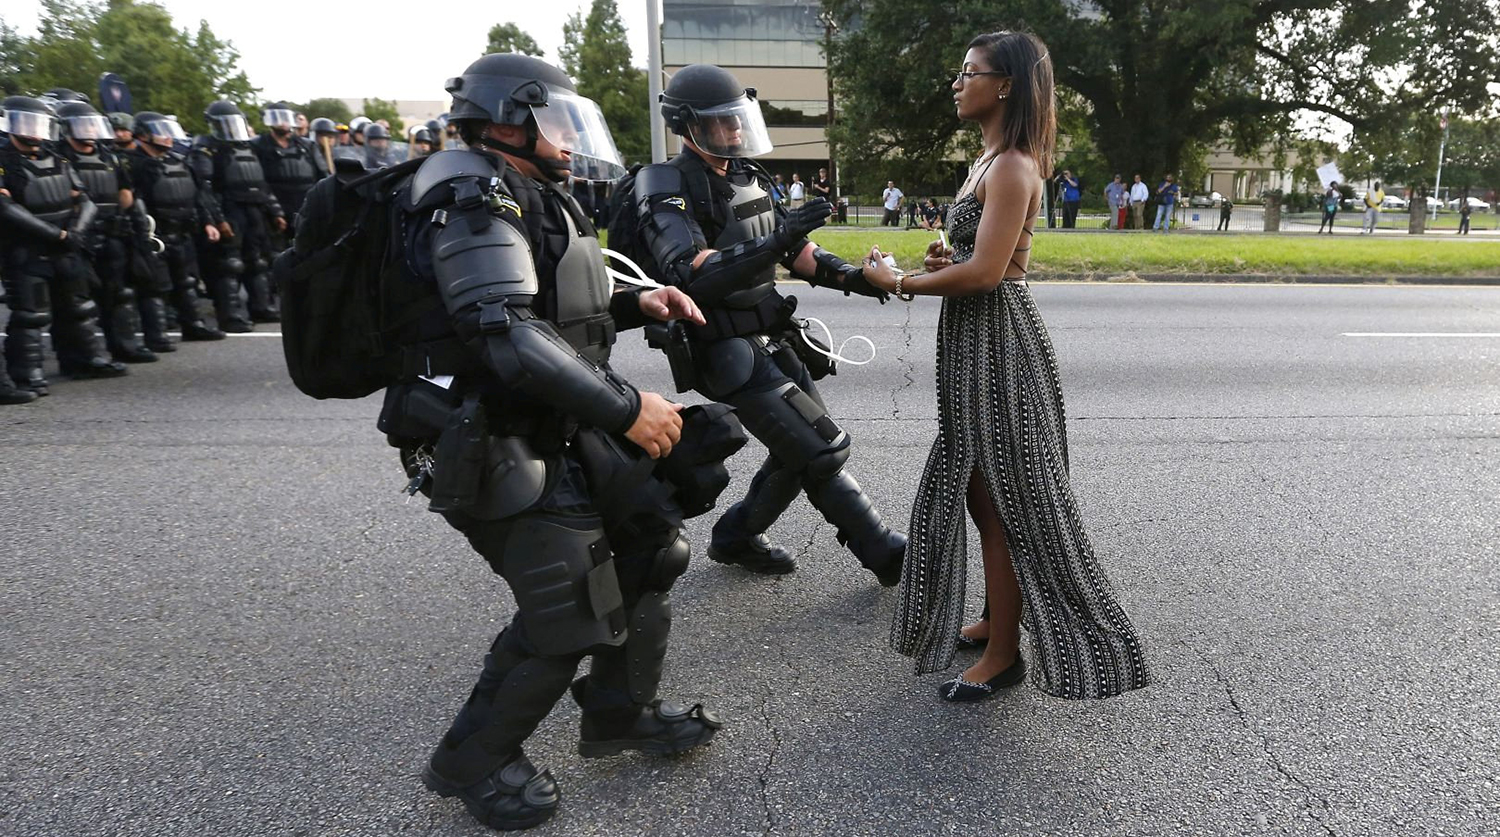 the us government faces different challenges with police brutality Nothing excuses specific acts of police brutality, especially in the garner case, but not enough attention is being paid to the emotional and psychological challenges of being a cop.